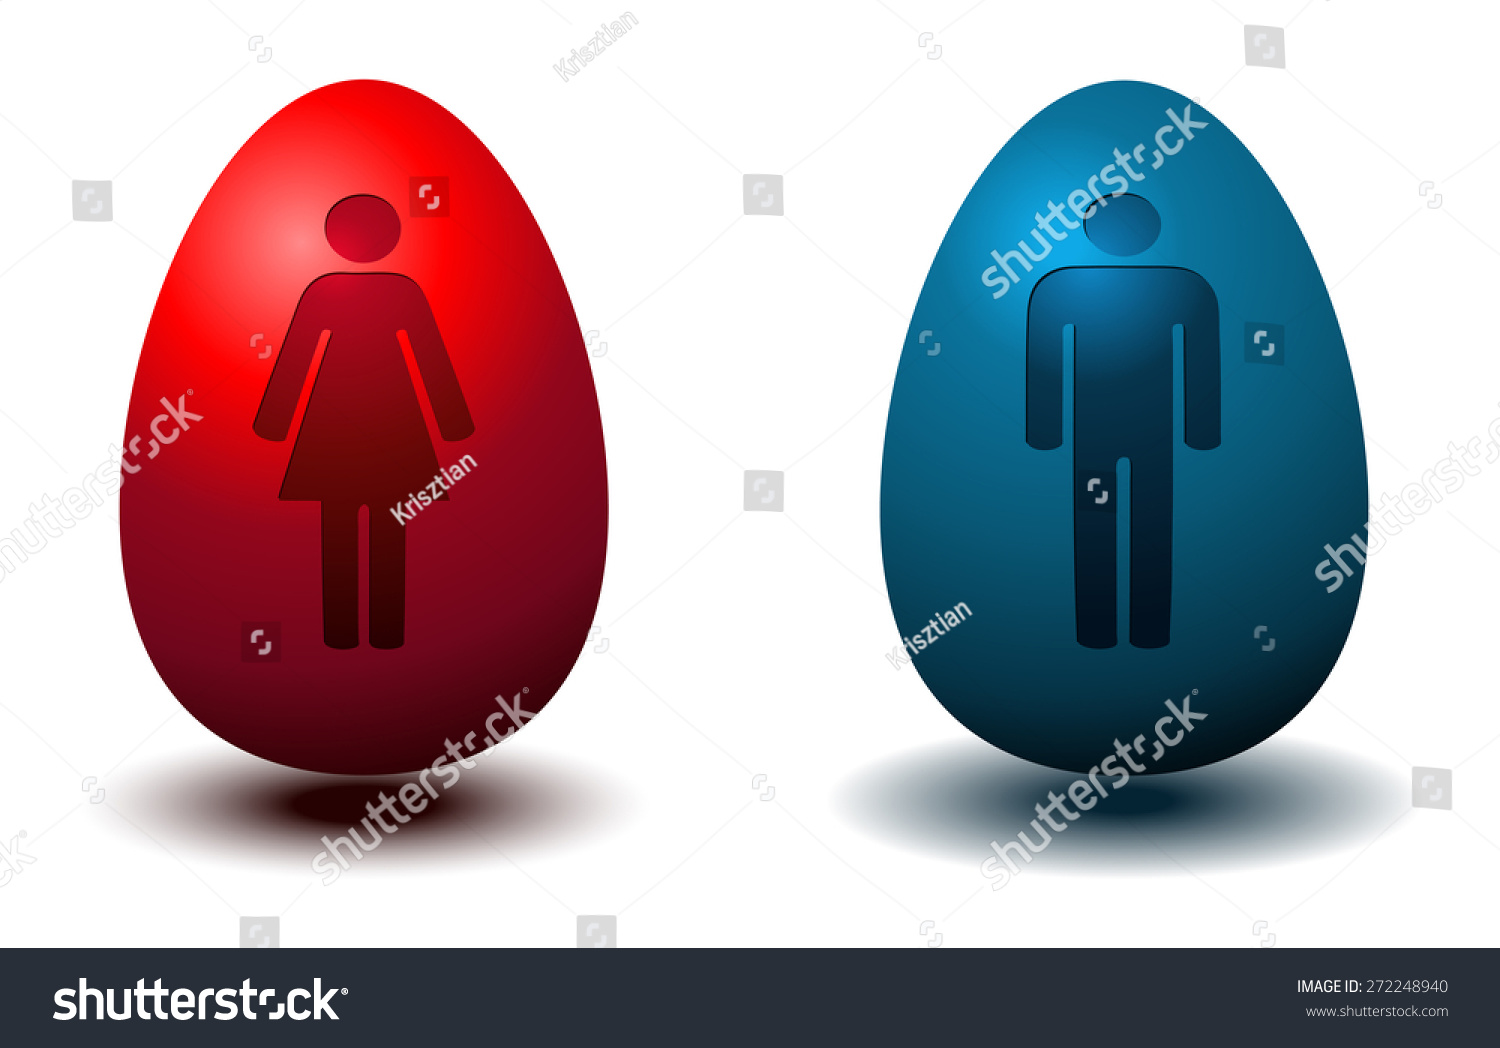 Boy Bathroom Sign Girl And Boy Restroom Signs On A Colored Red And Blue Glossy Eggs